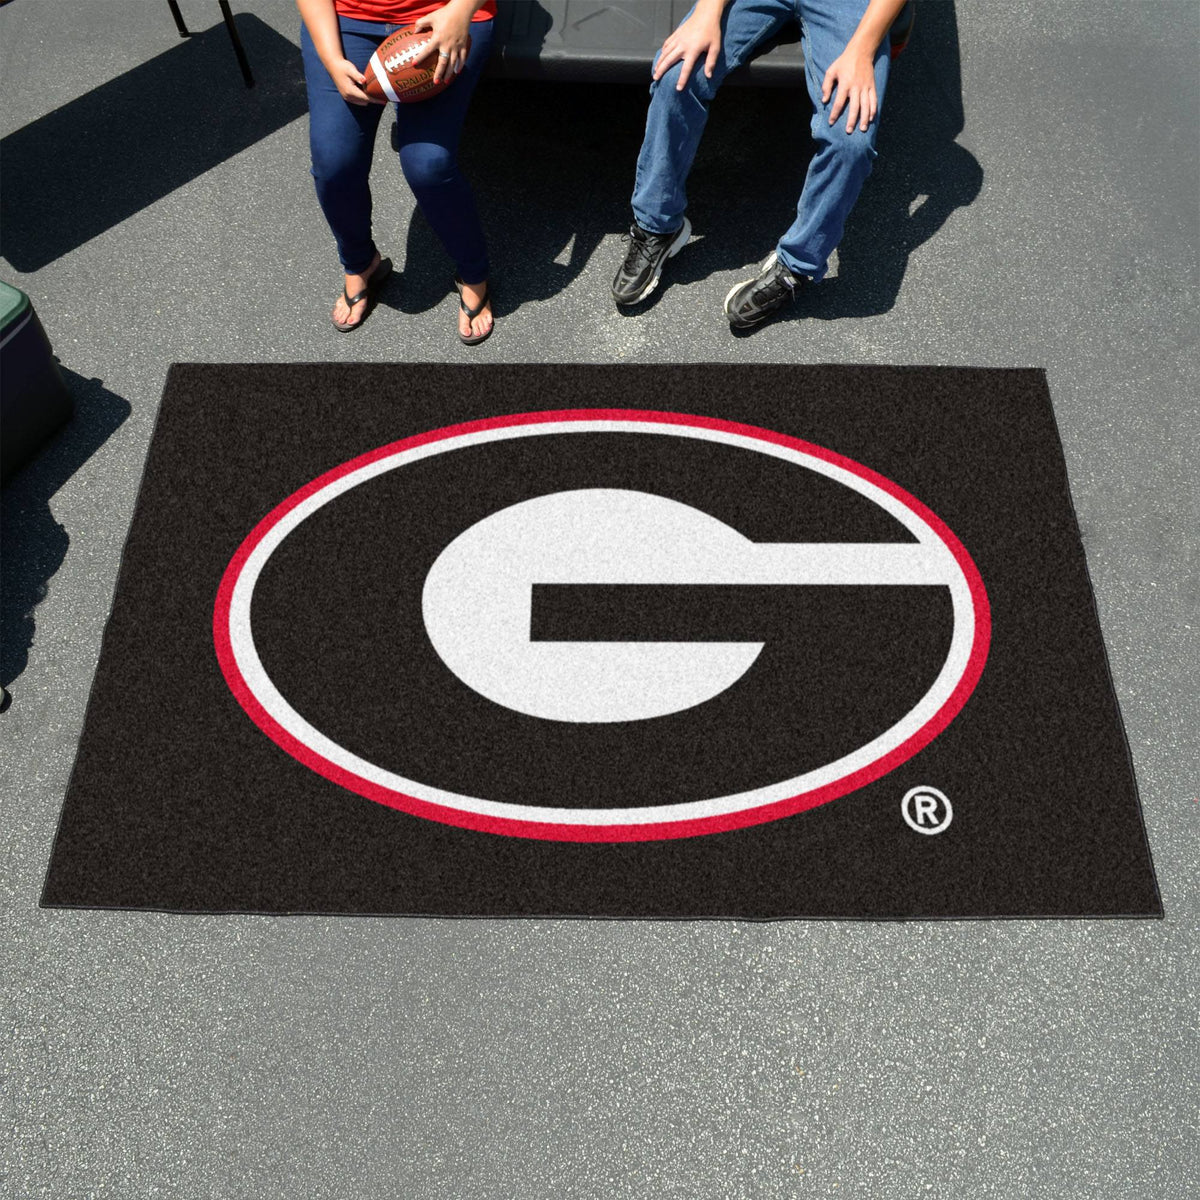 Collegiate - Ulti-Mat: A - L Collegiate Mats, Rectangular Mats, Ulti-Mat, Collegiate, Home Fan Mats Georgia